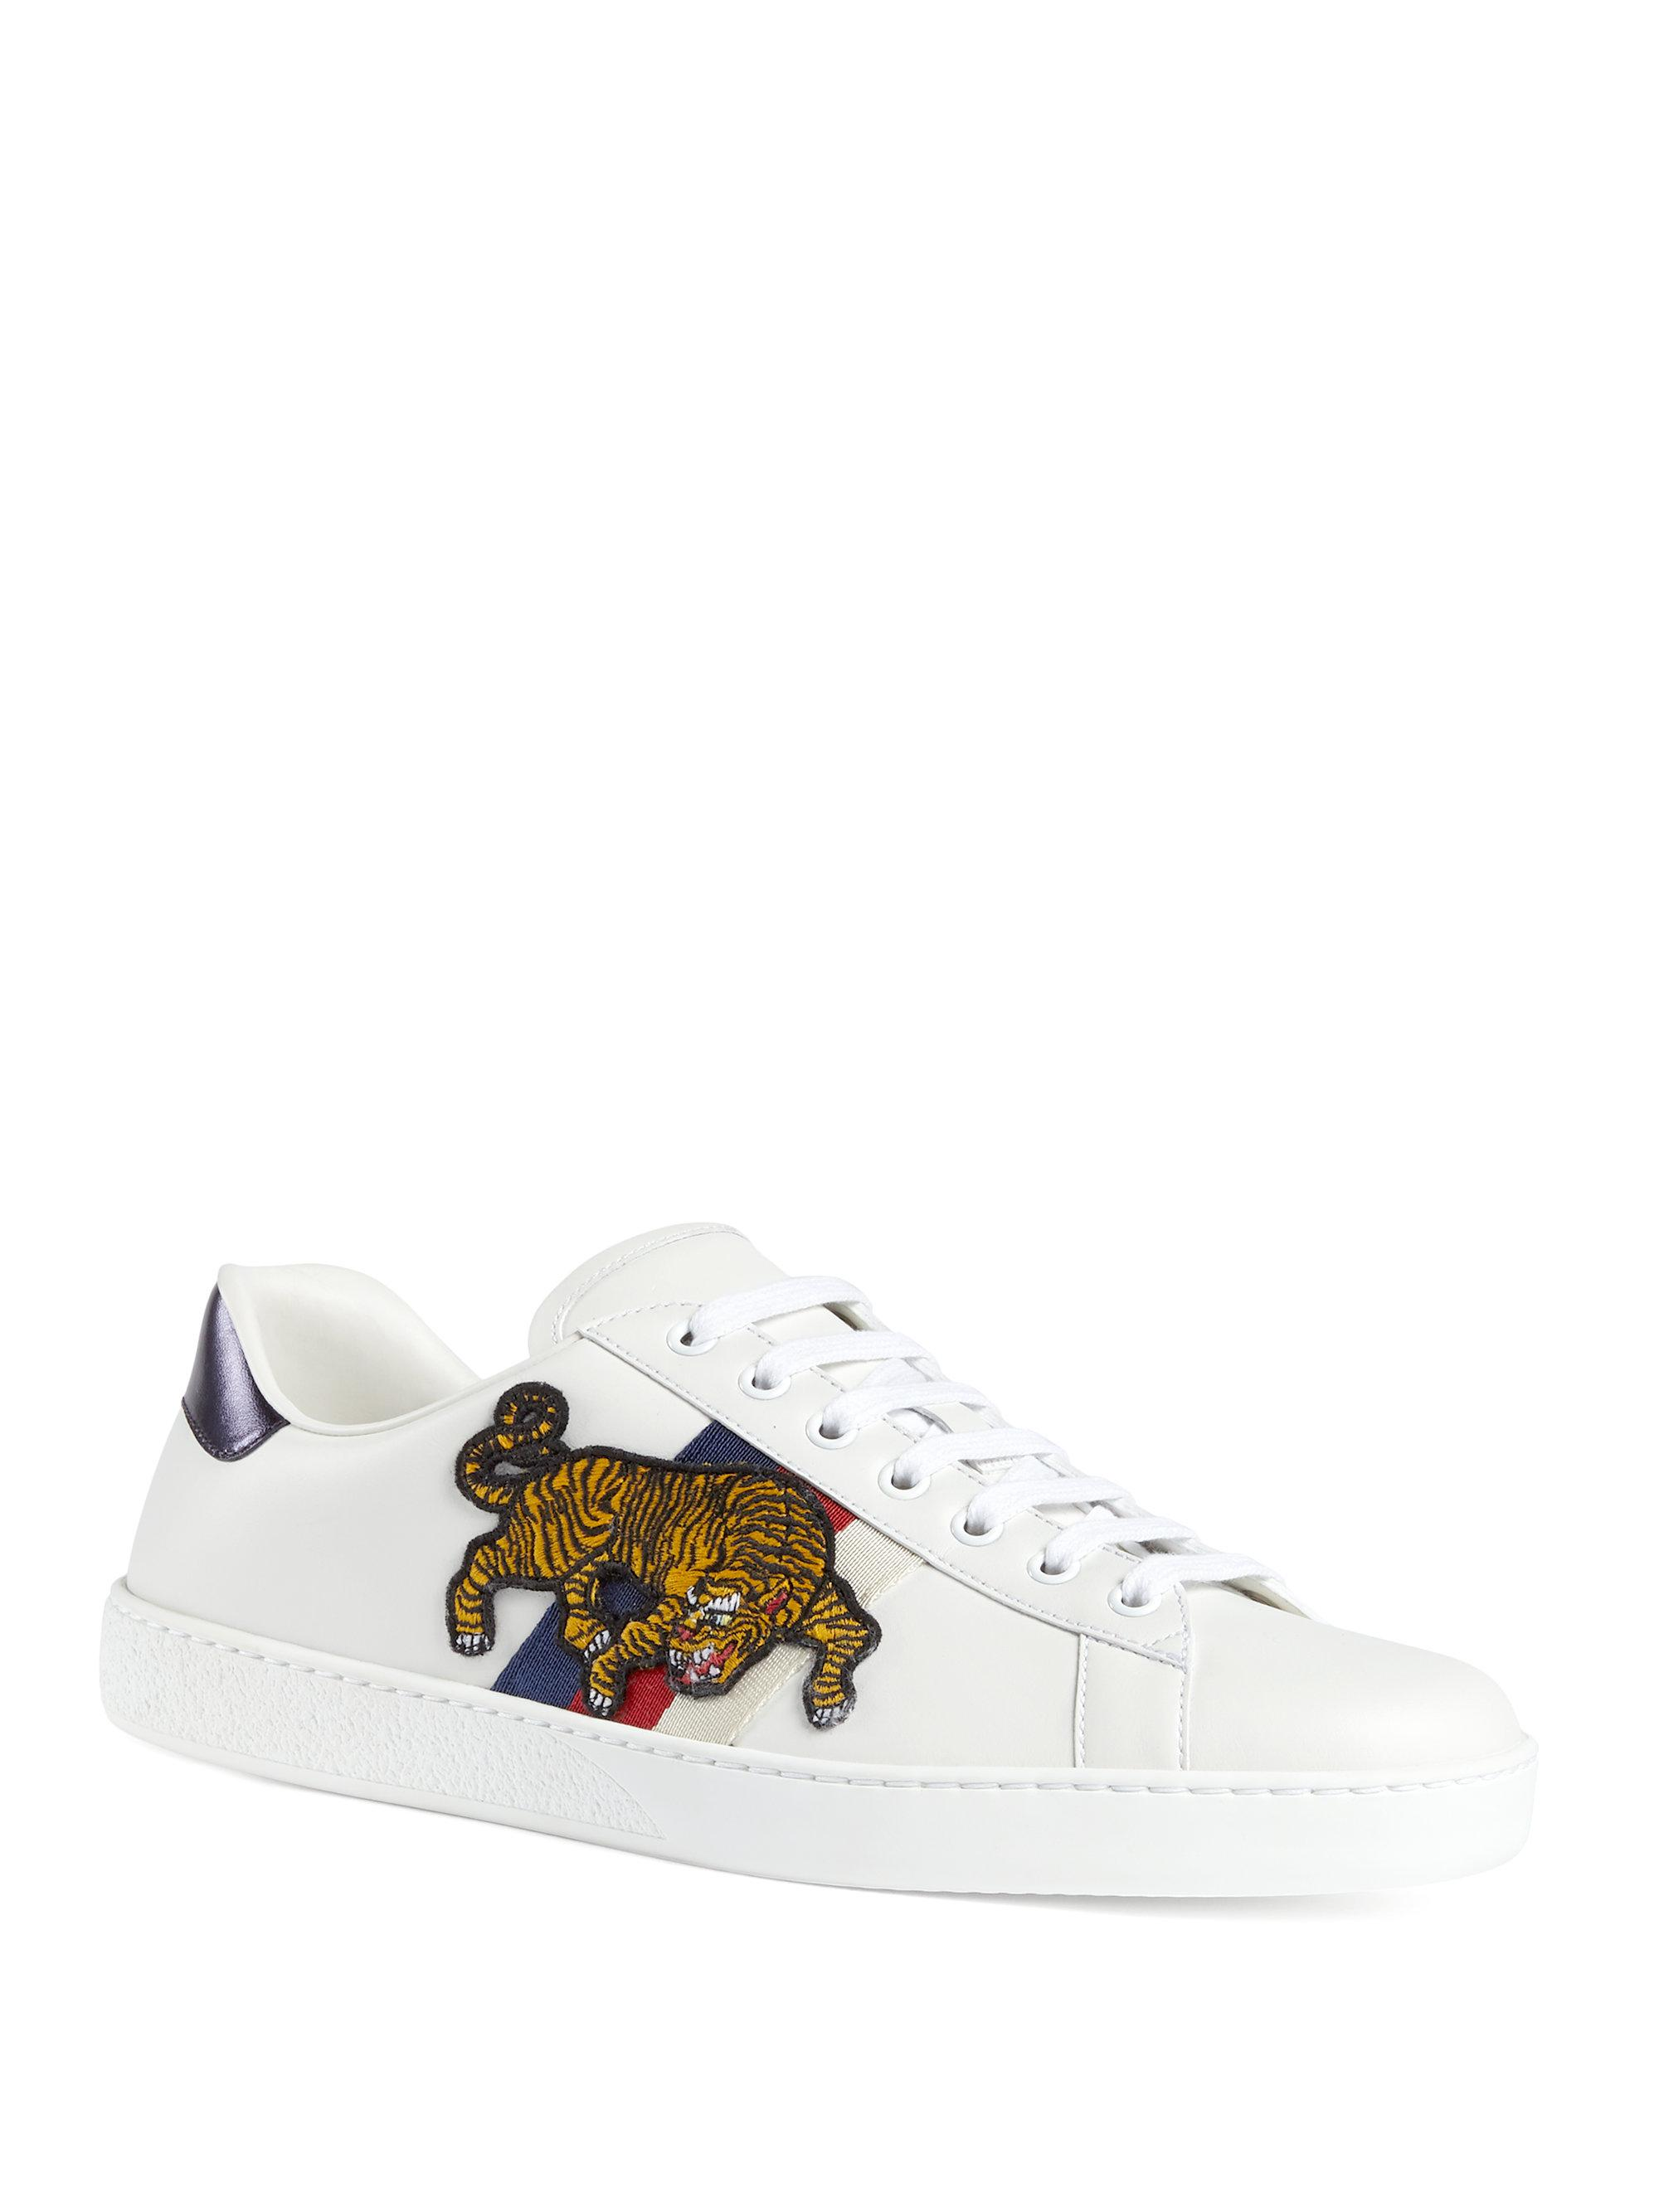 tER6fIKCMa Exclusive Tiger Leather Sneakers YoTia